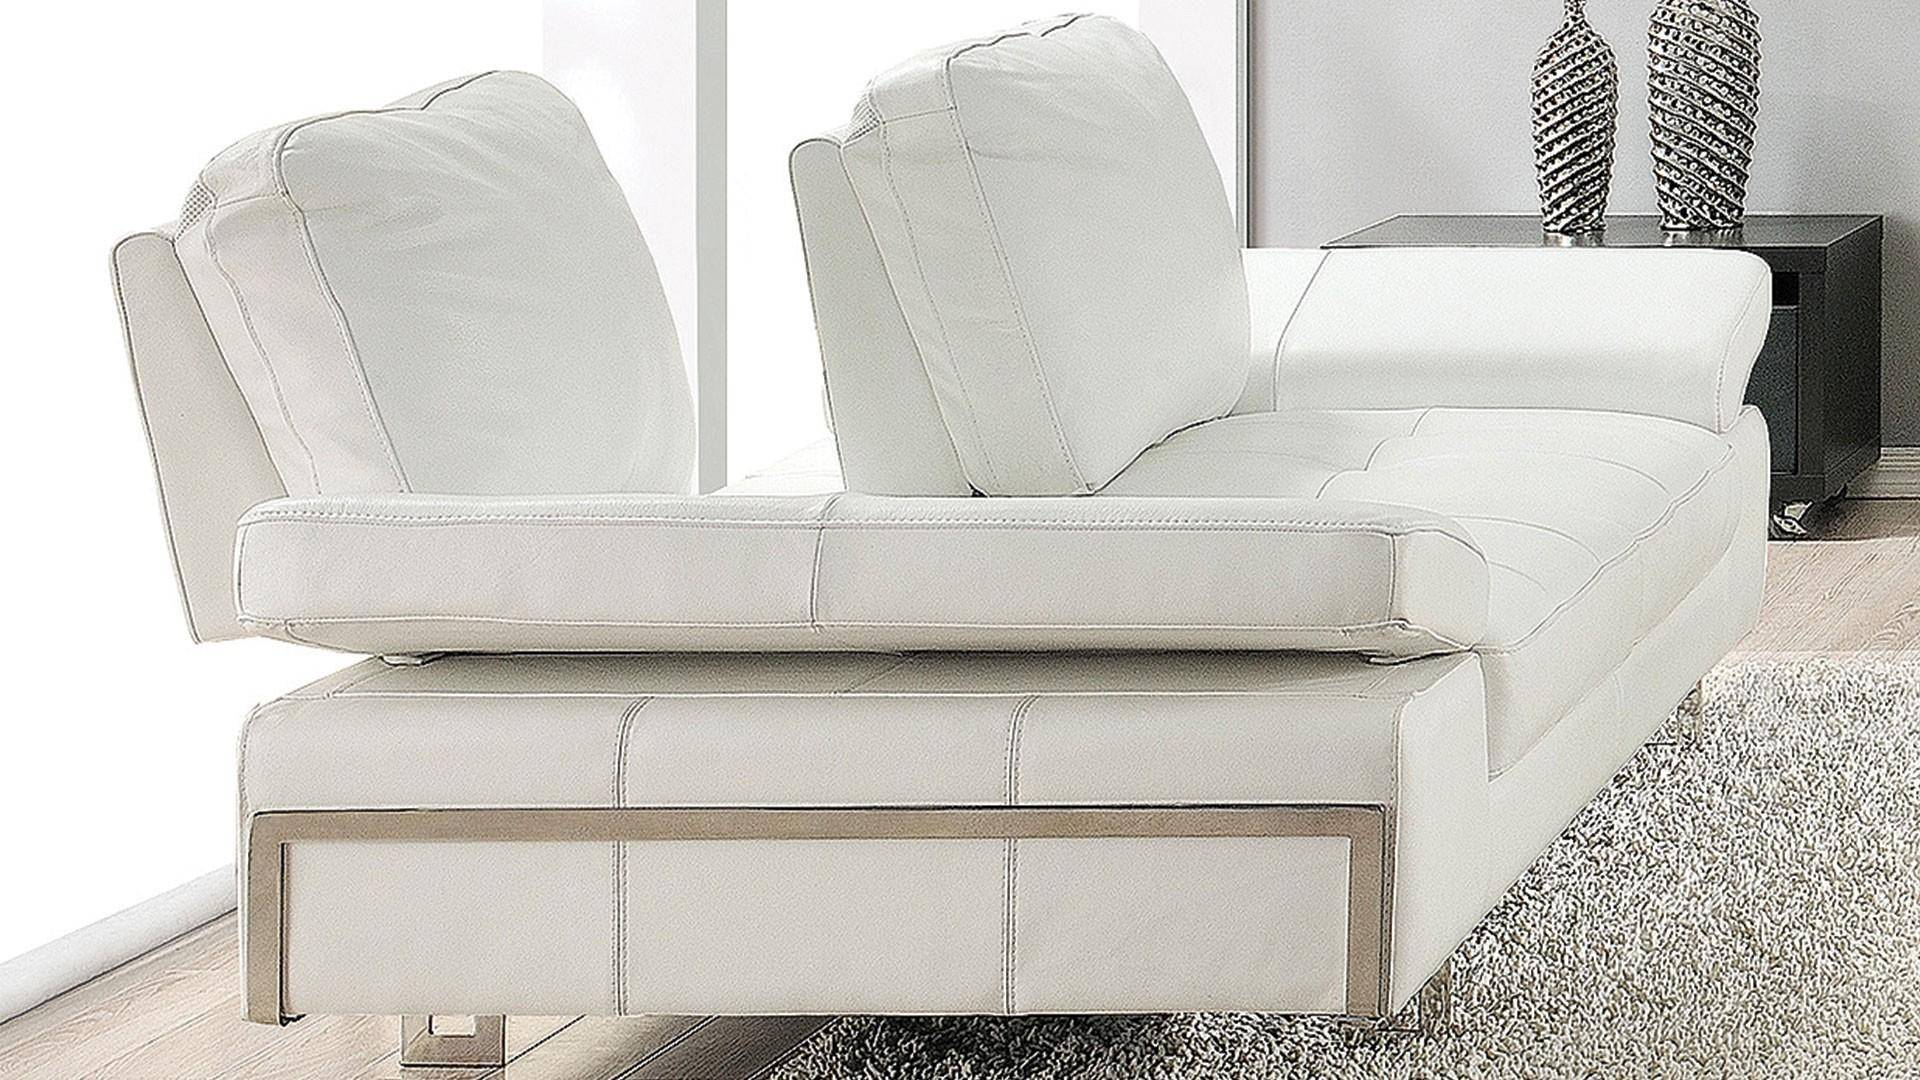 Italian Leather Ultra Modern Sofa Set